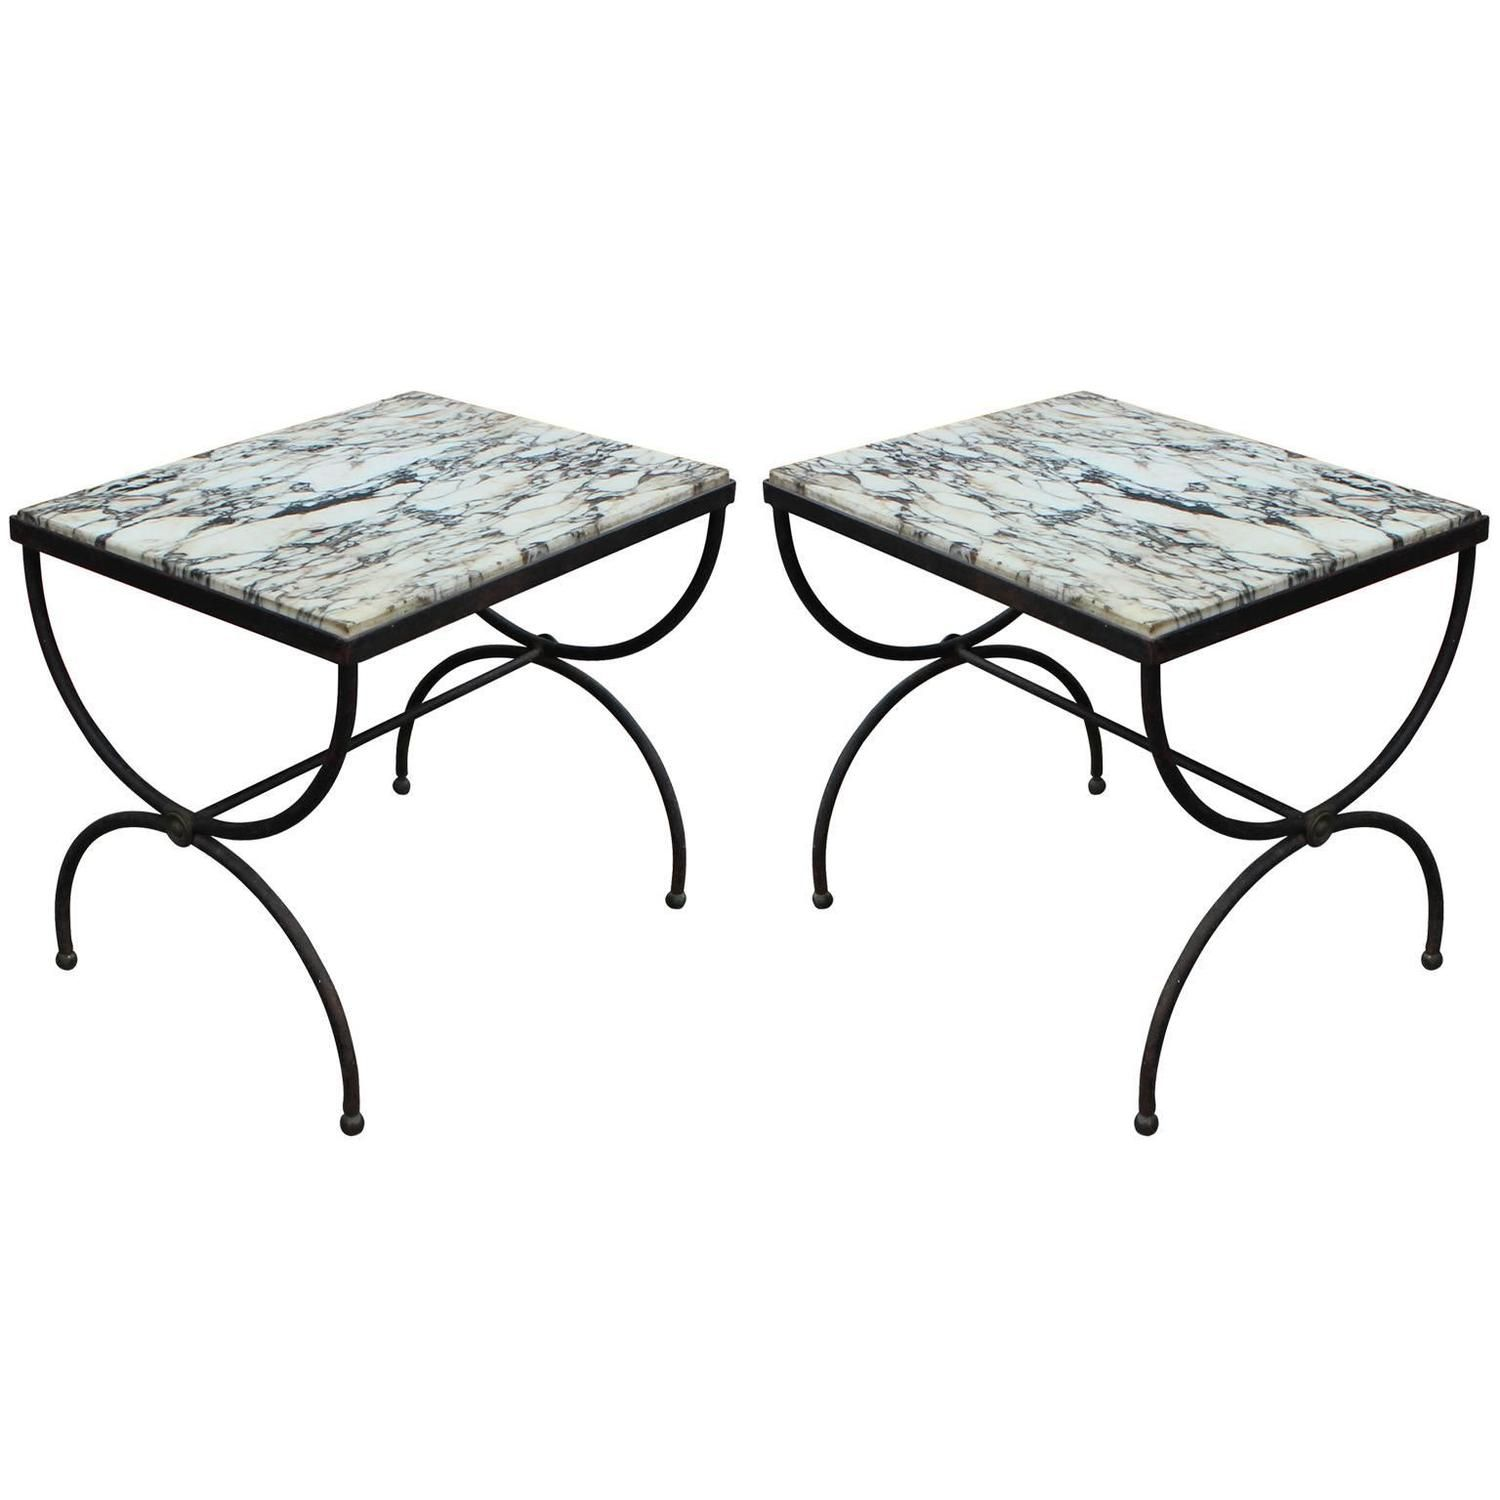 Lovely Pair Of Wrought Iron And Marble Cerule Side Tables From A